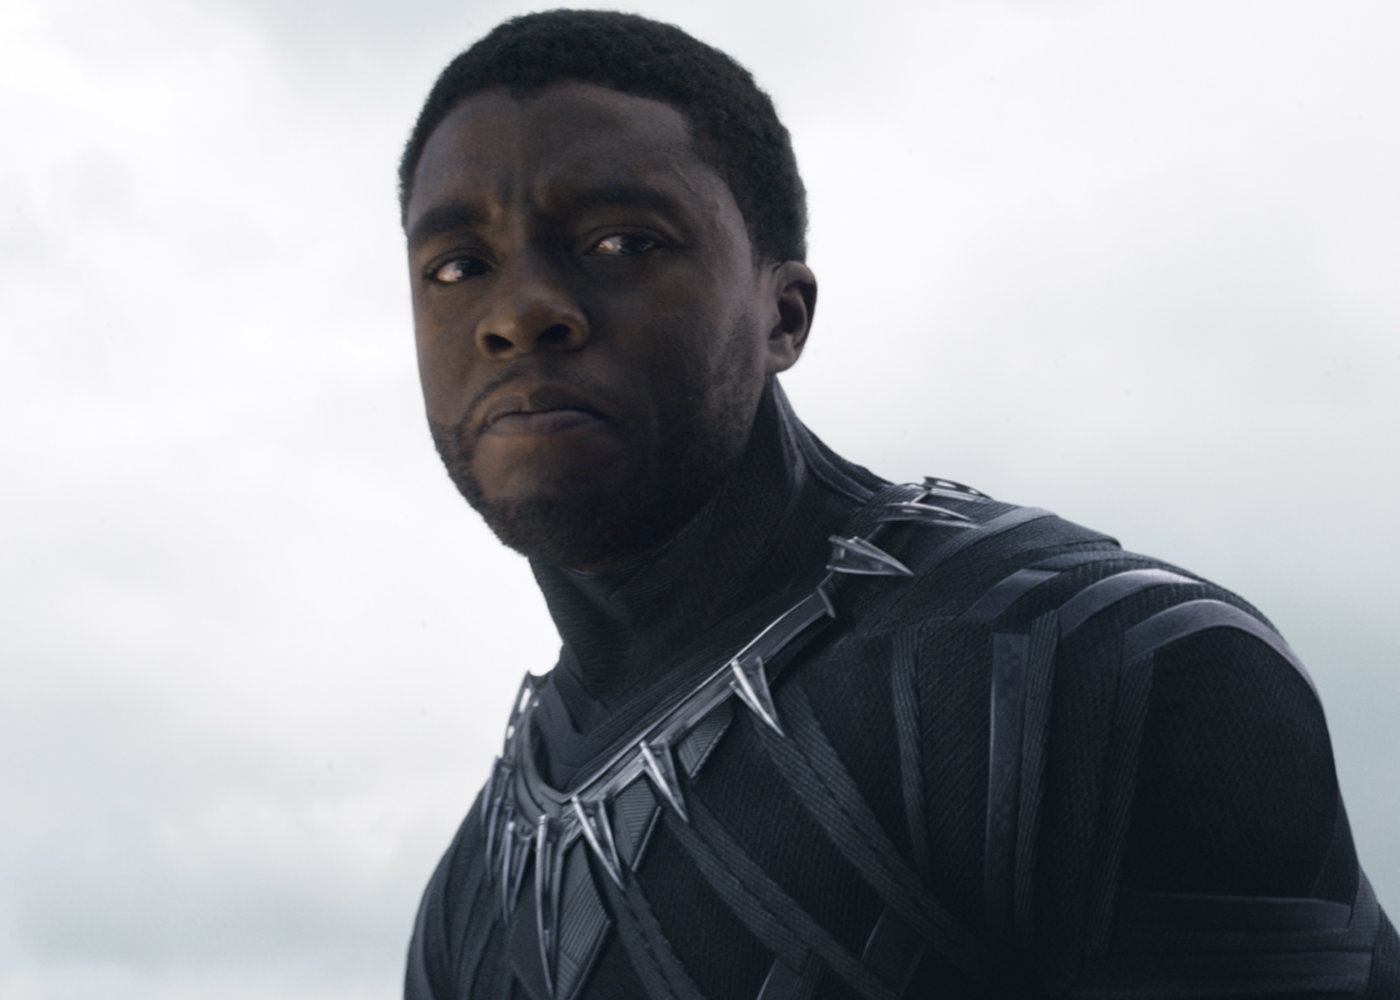 Black Panther Teaser Generates 89 Million Views in First 24 Hours